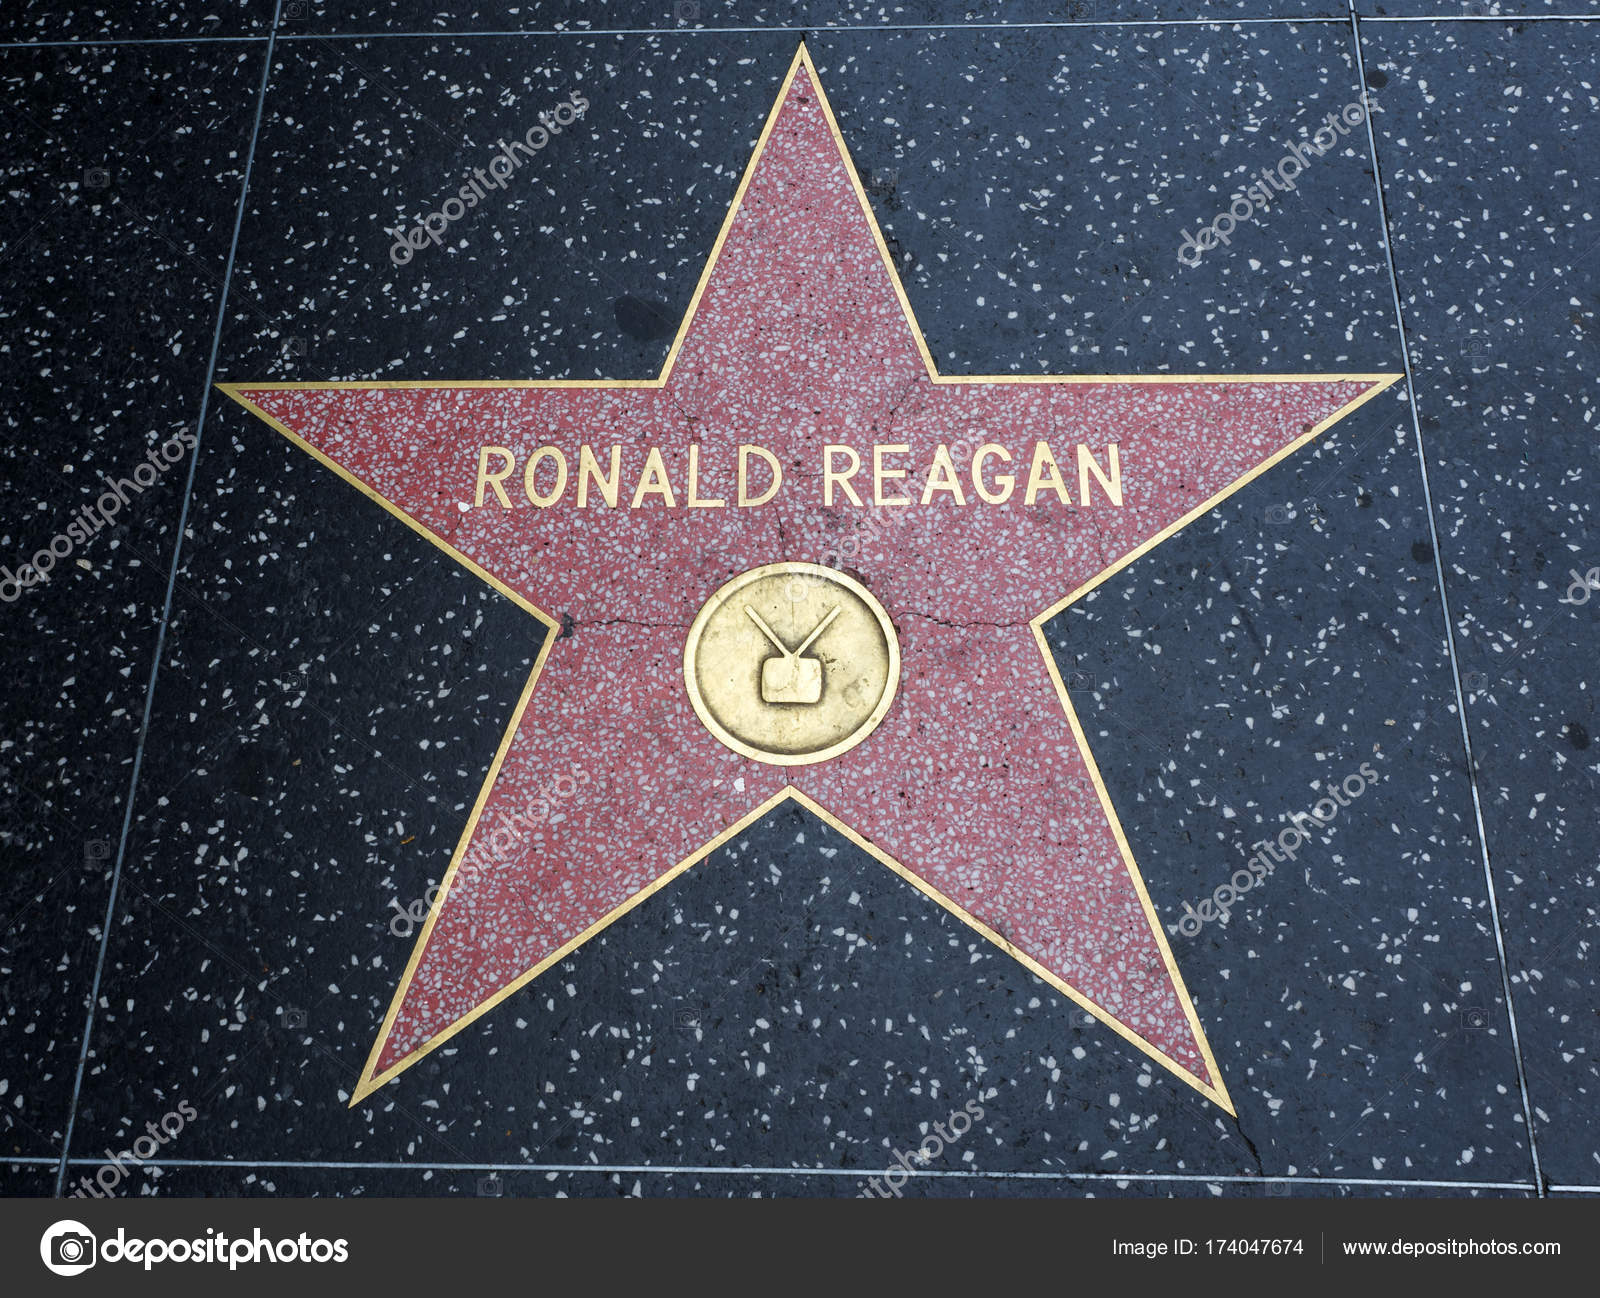 Image result for picture of reagan star on hollywood walk of fame